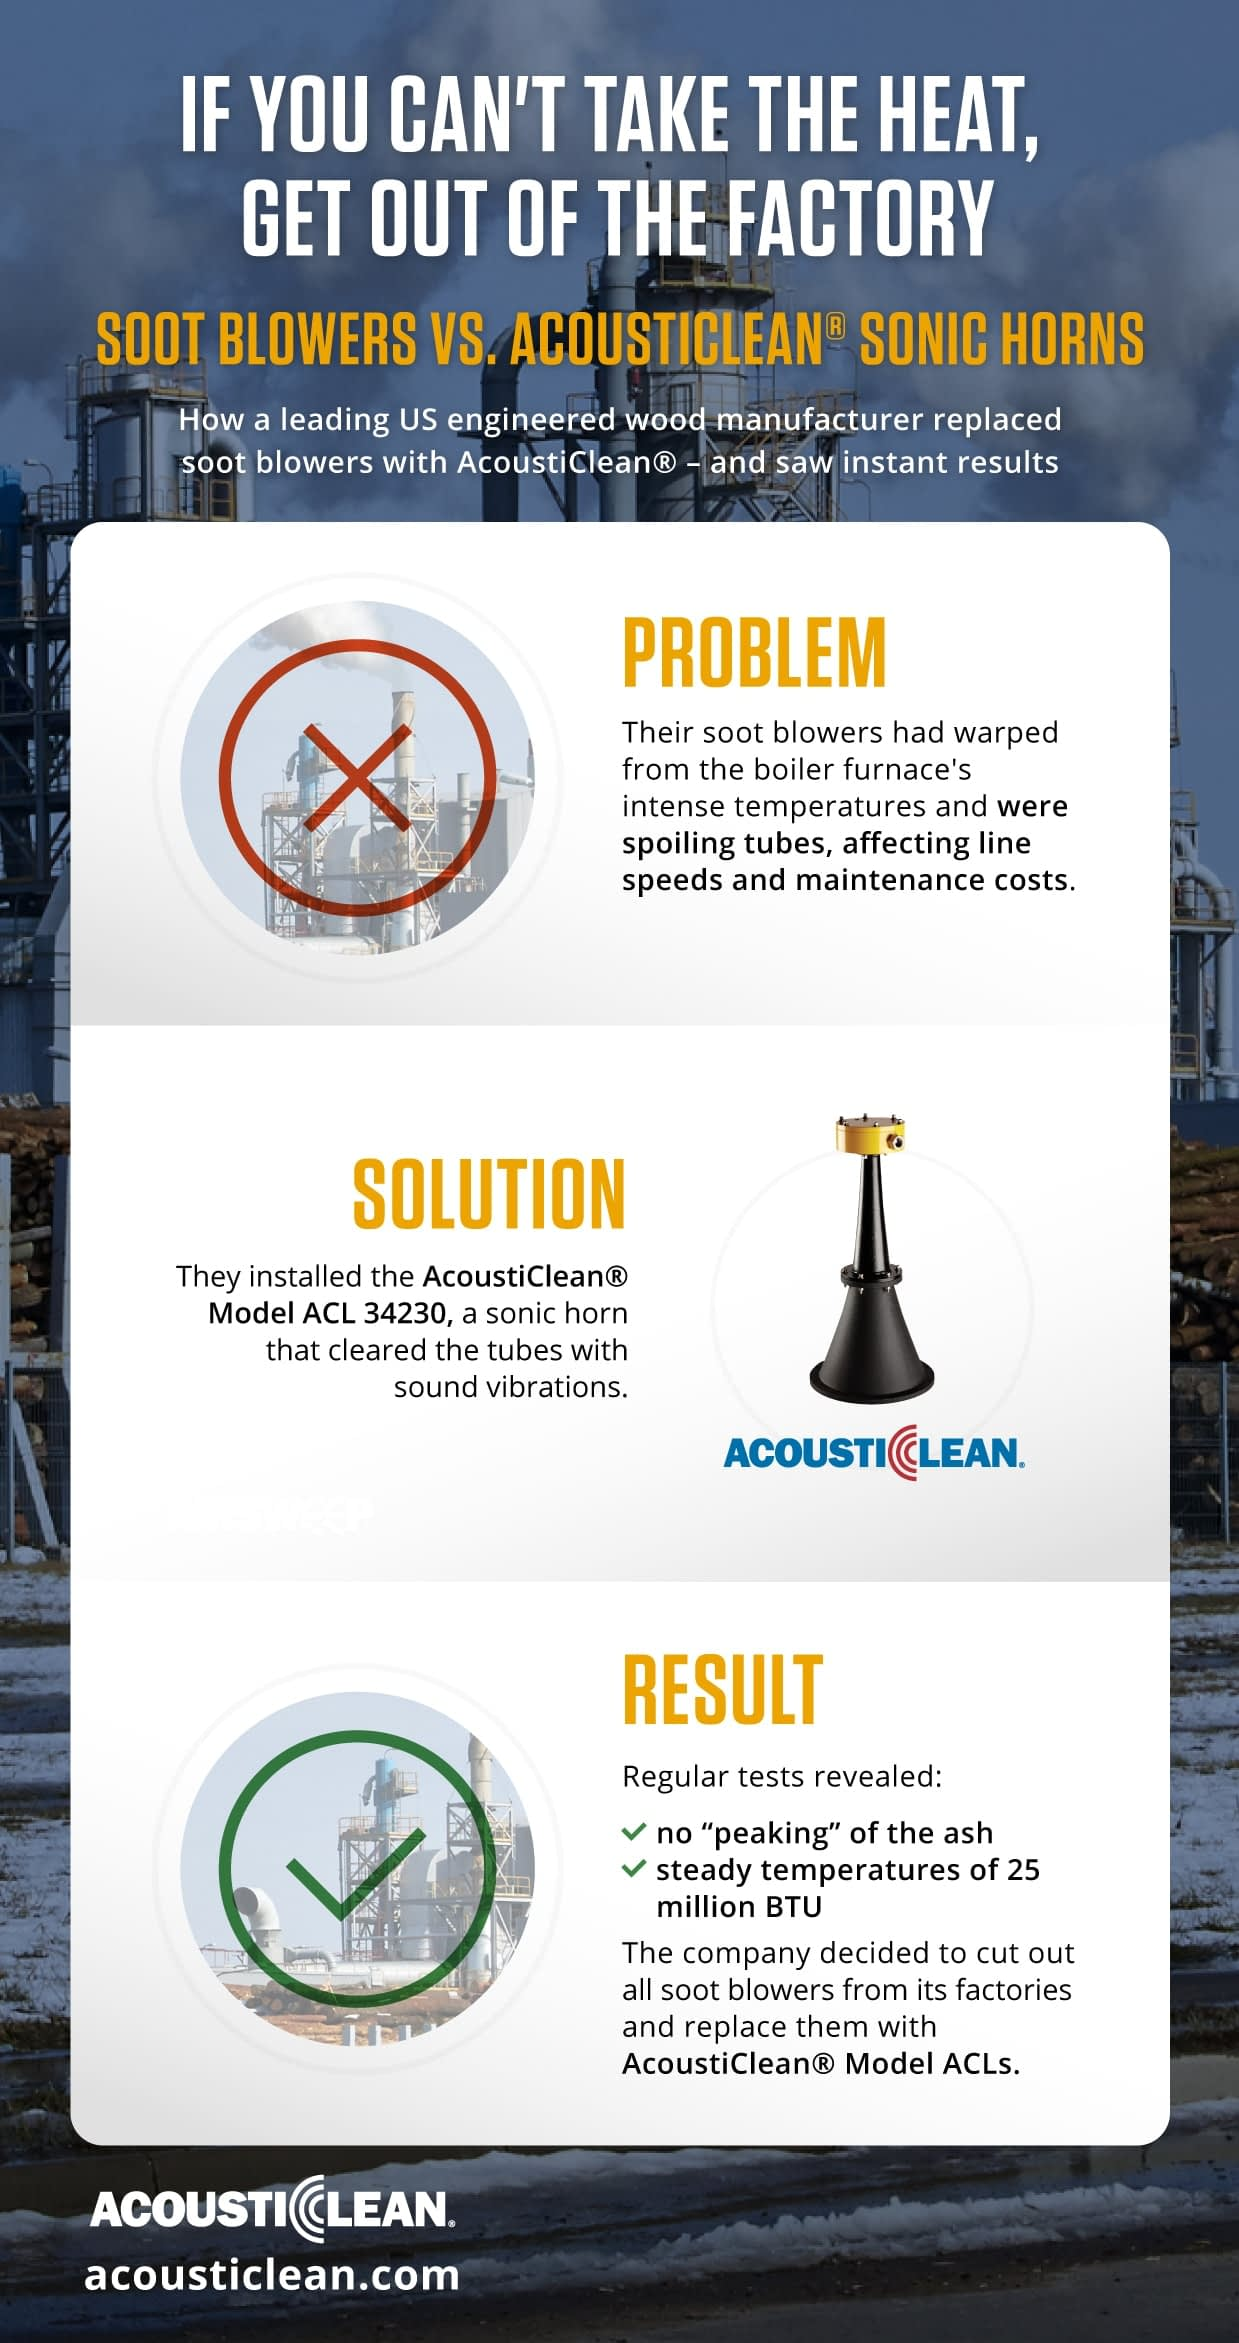 A US-engineered wood manufacturer used replaced soot blowers with AcoustiClean® Sonic Horns and saw instant results.